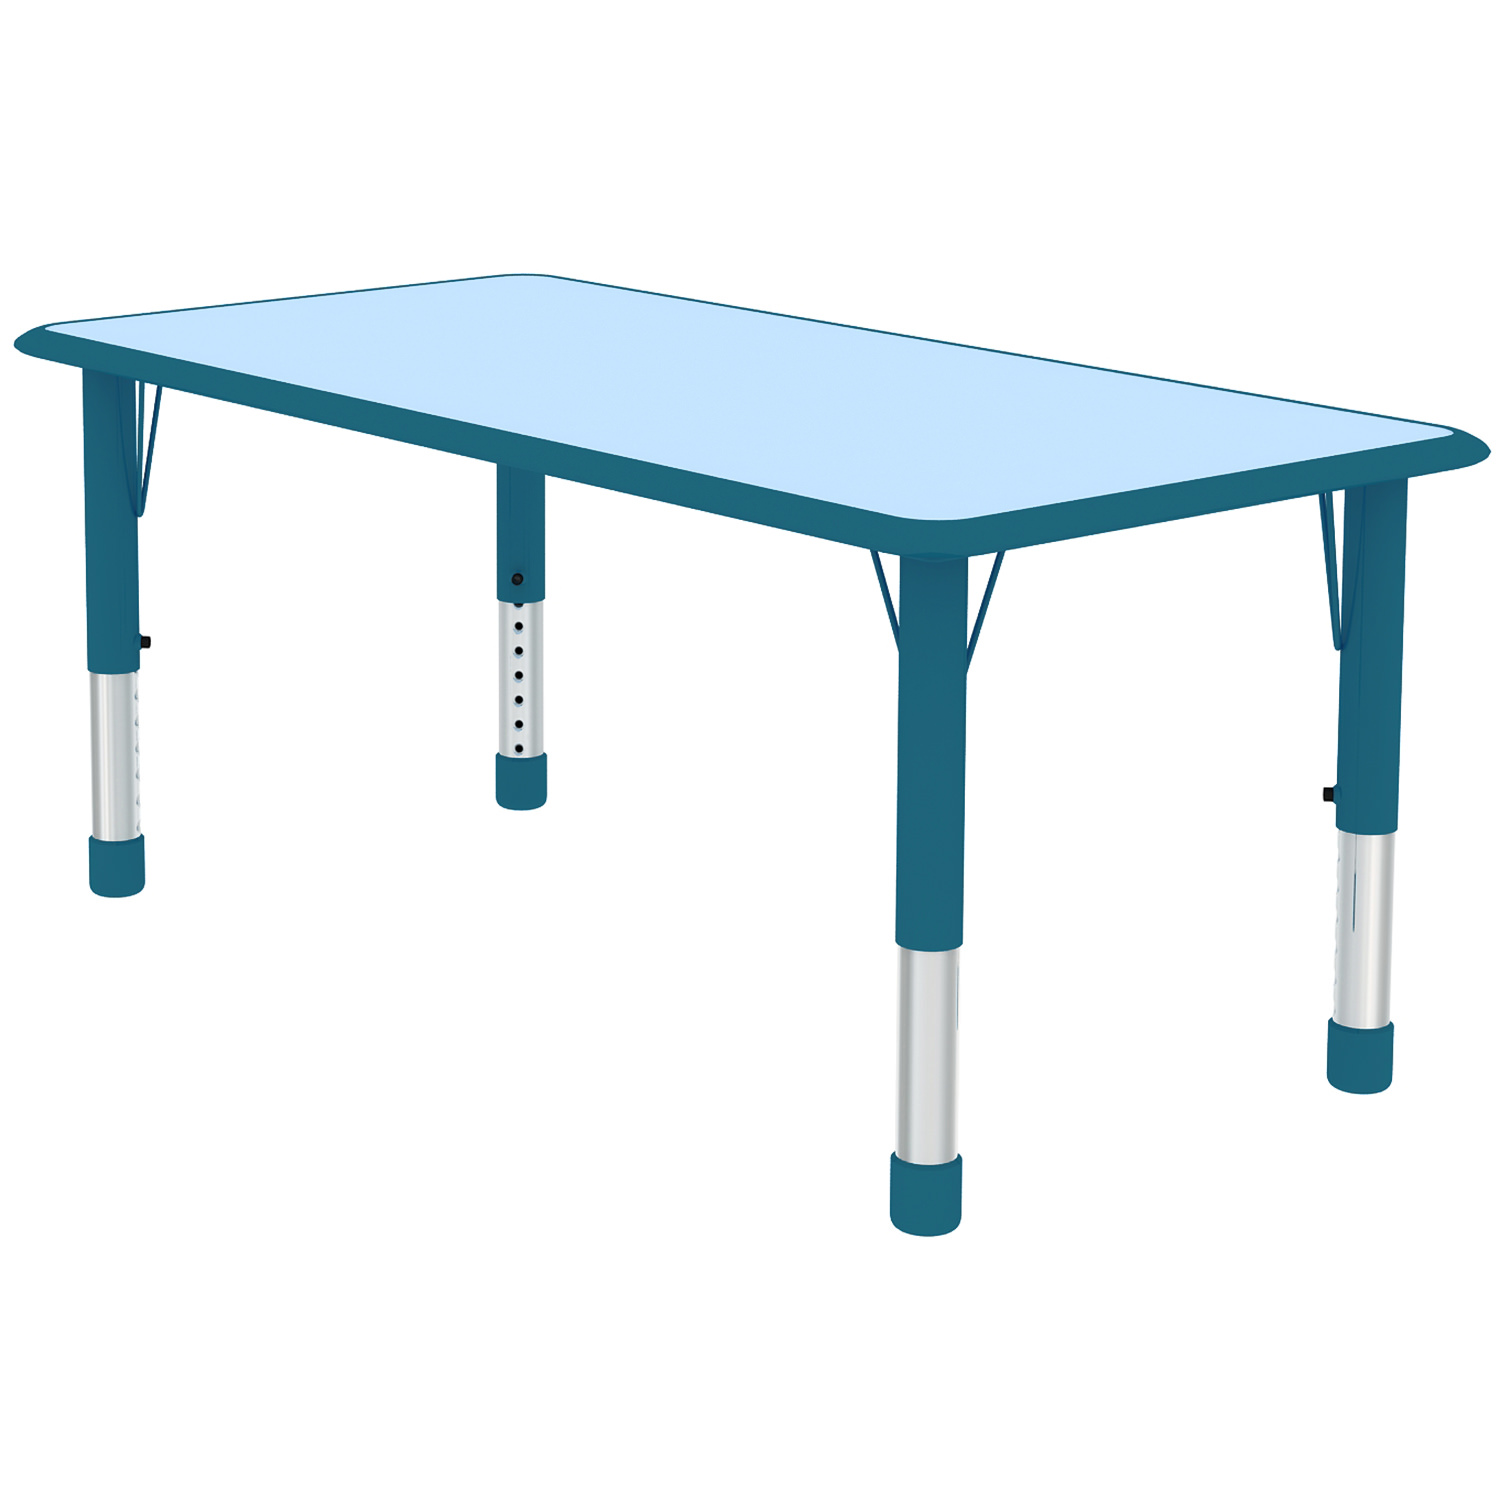 Attirant 2xhome   Blue Teal Kids Table Height Adjustable Rectangle Shape Activity  Table School Table Childs Bright Colorful Table   Walmart.com